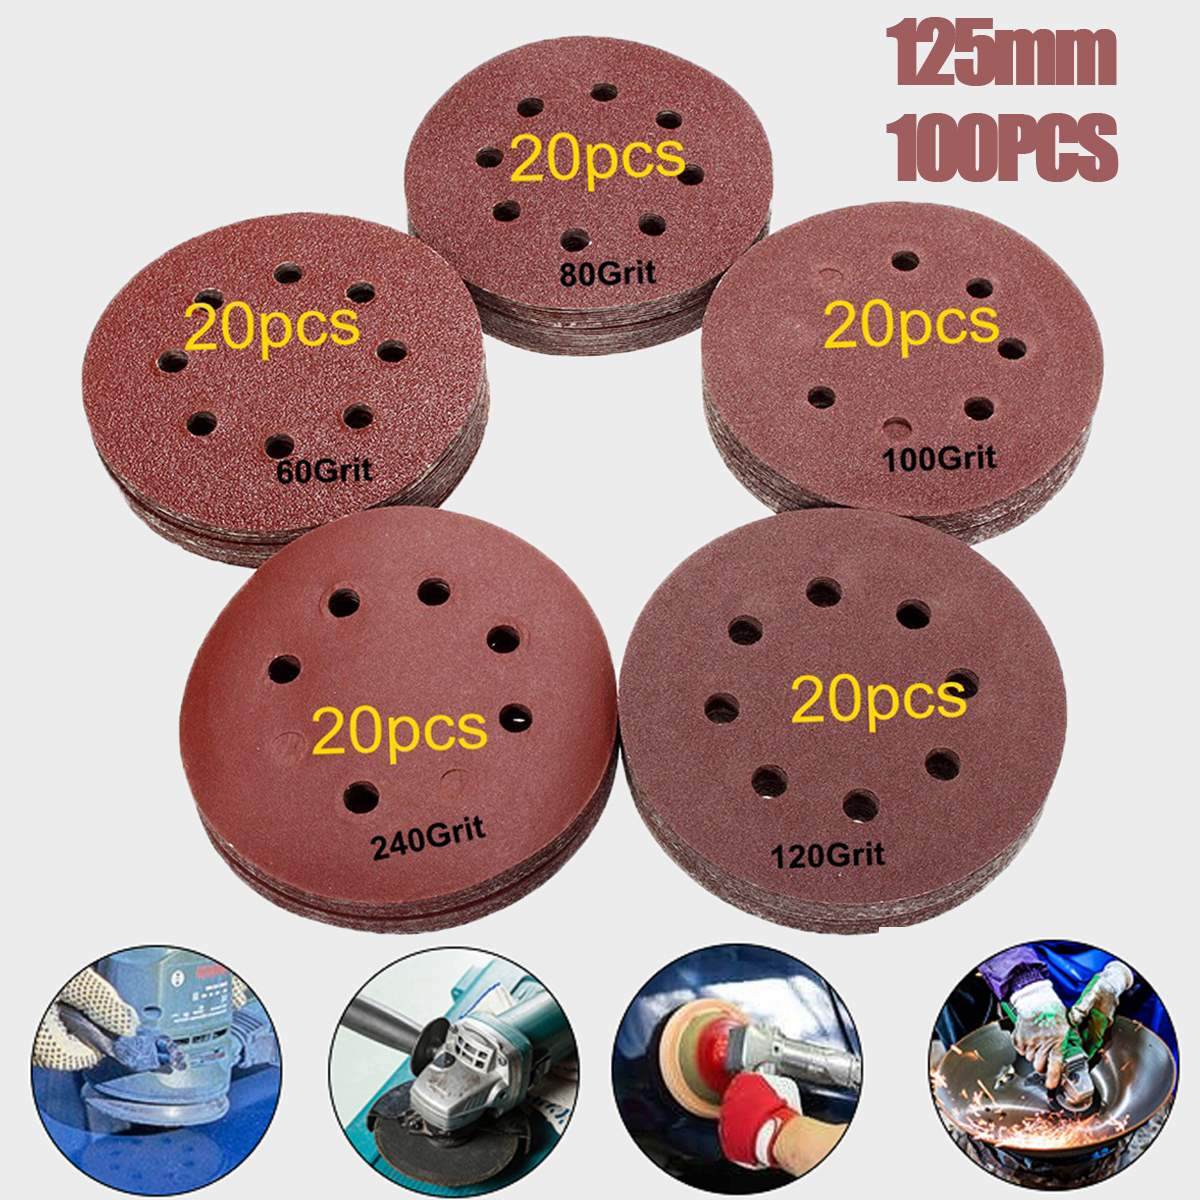 цена на 100pcs 125mm 60 80 100 120 240 Grit Round Shape Sanding Discs Buffing Sheet Sandpaper 8 Hole Sander Polishing Pad Each of 20